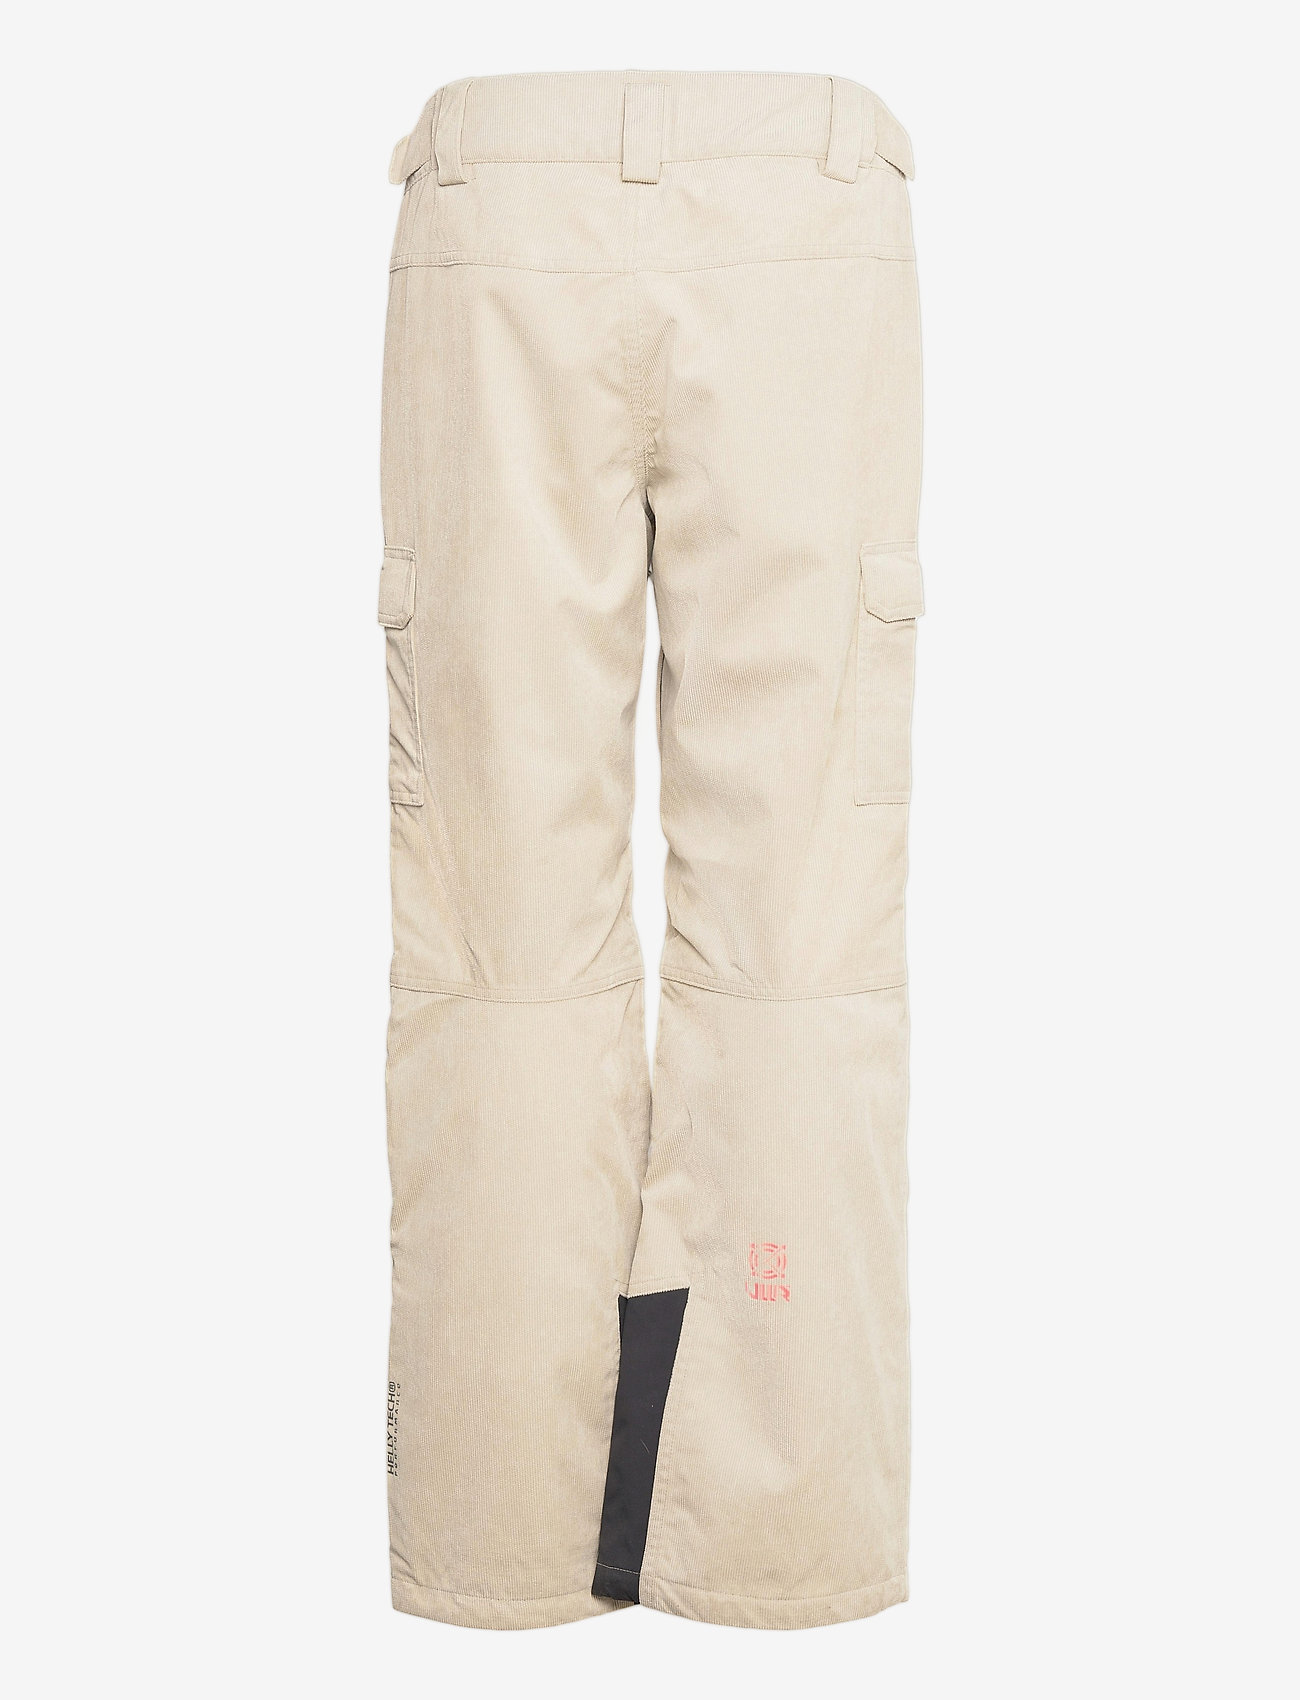 Helly Hansen - W SWITCH CARGO INSULATED PANT - skibukser - pelican - 1